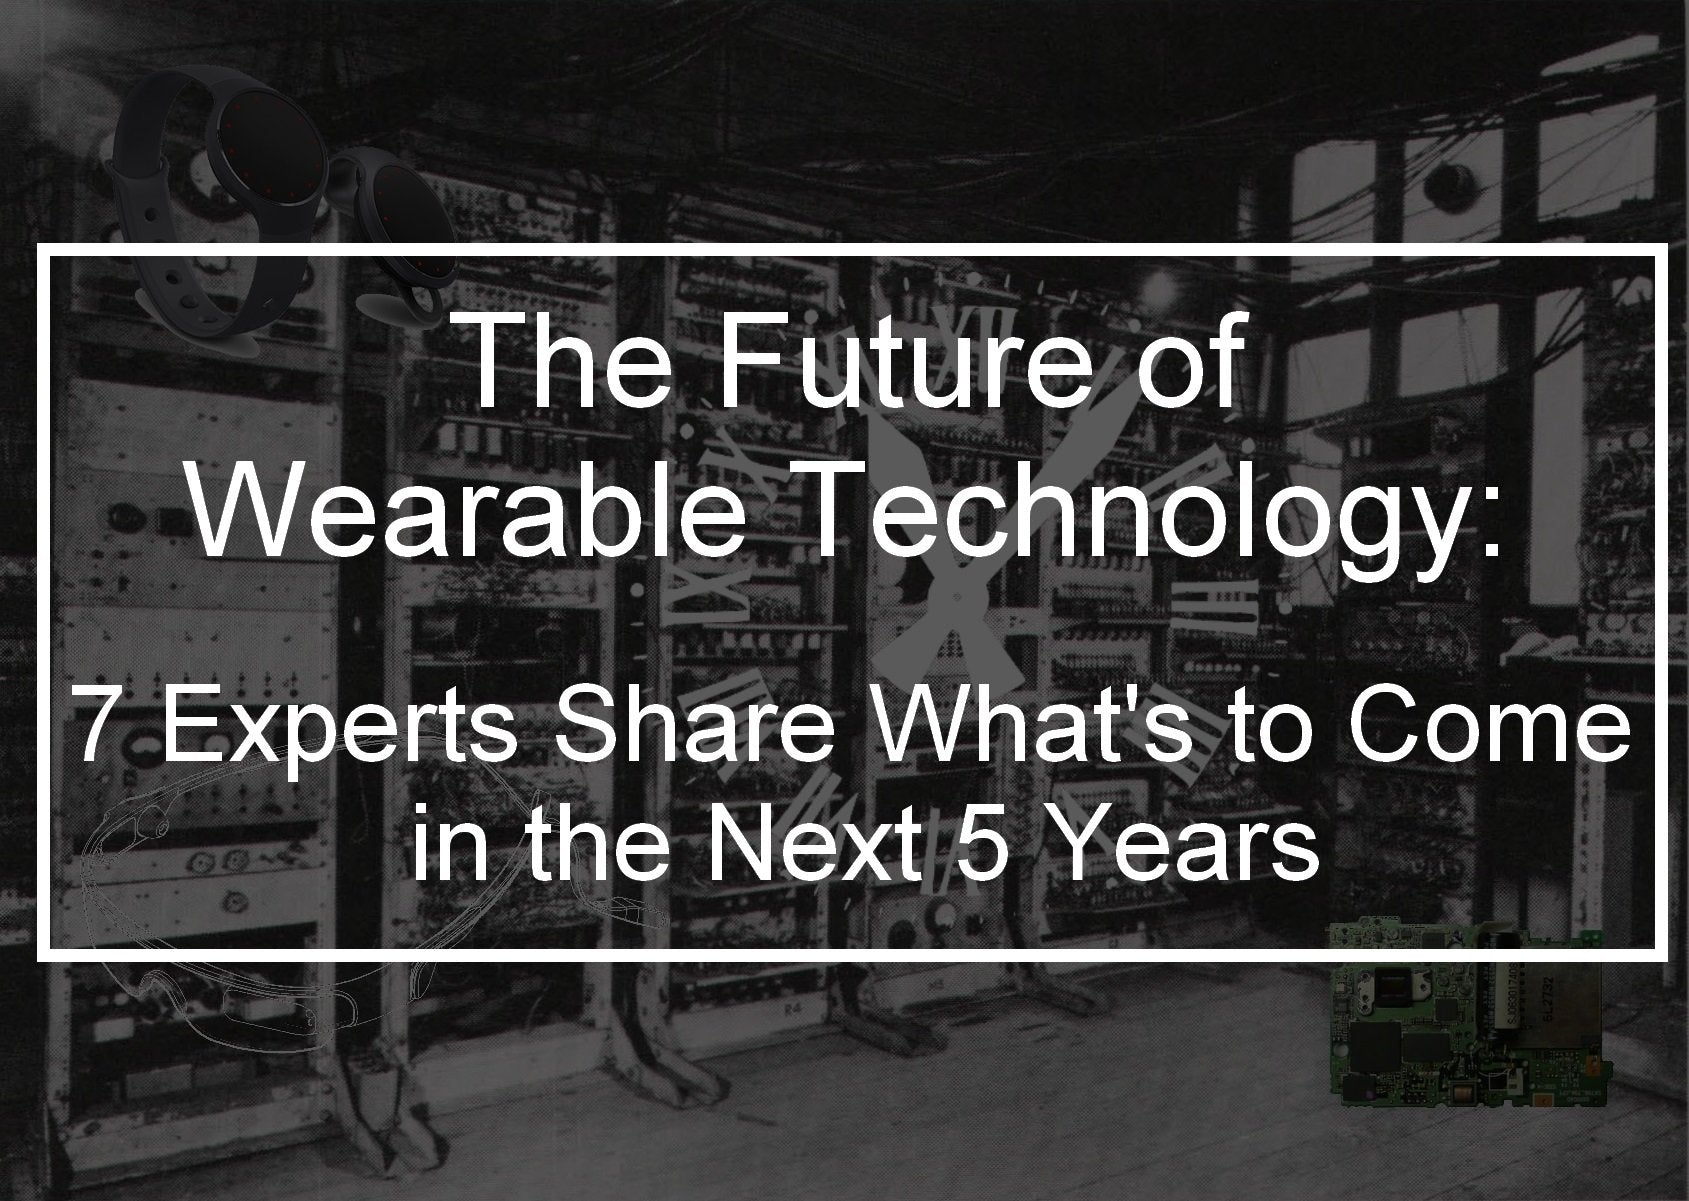 The Future of Wearable Technology: 7 Experts Share What's to Come in the Next 5 Years